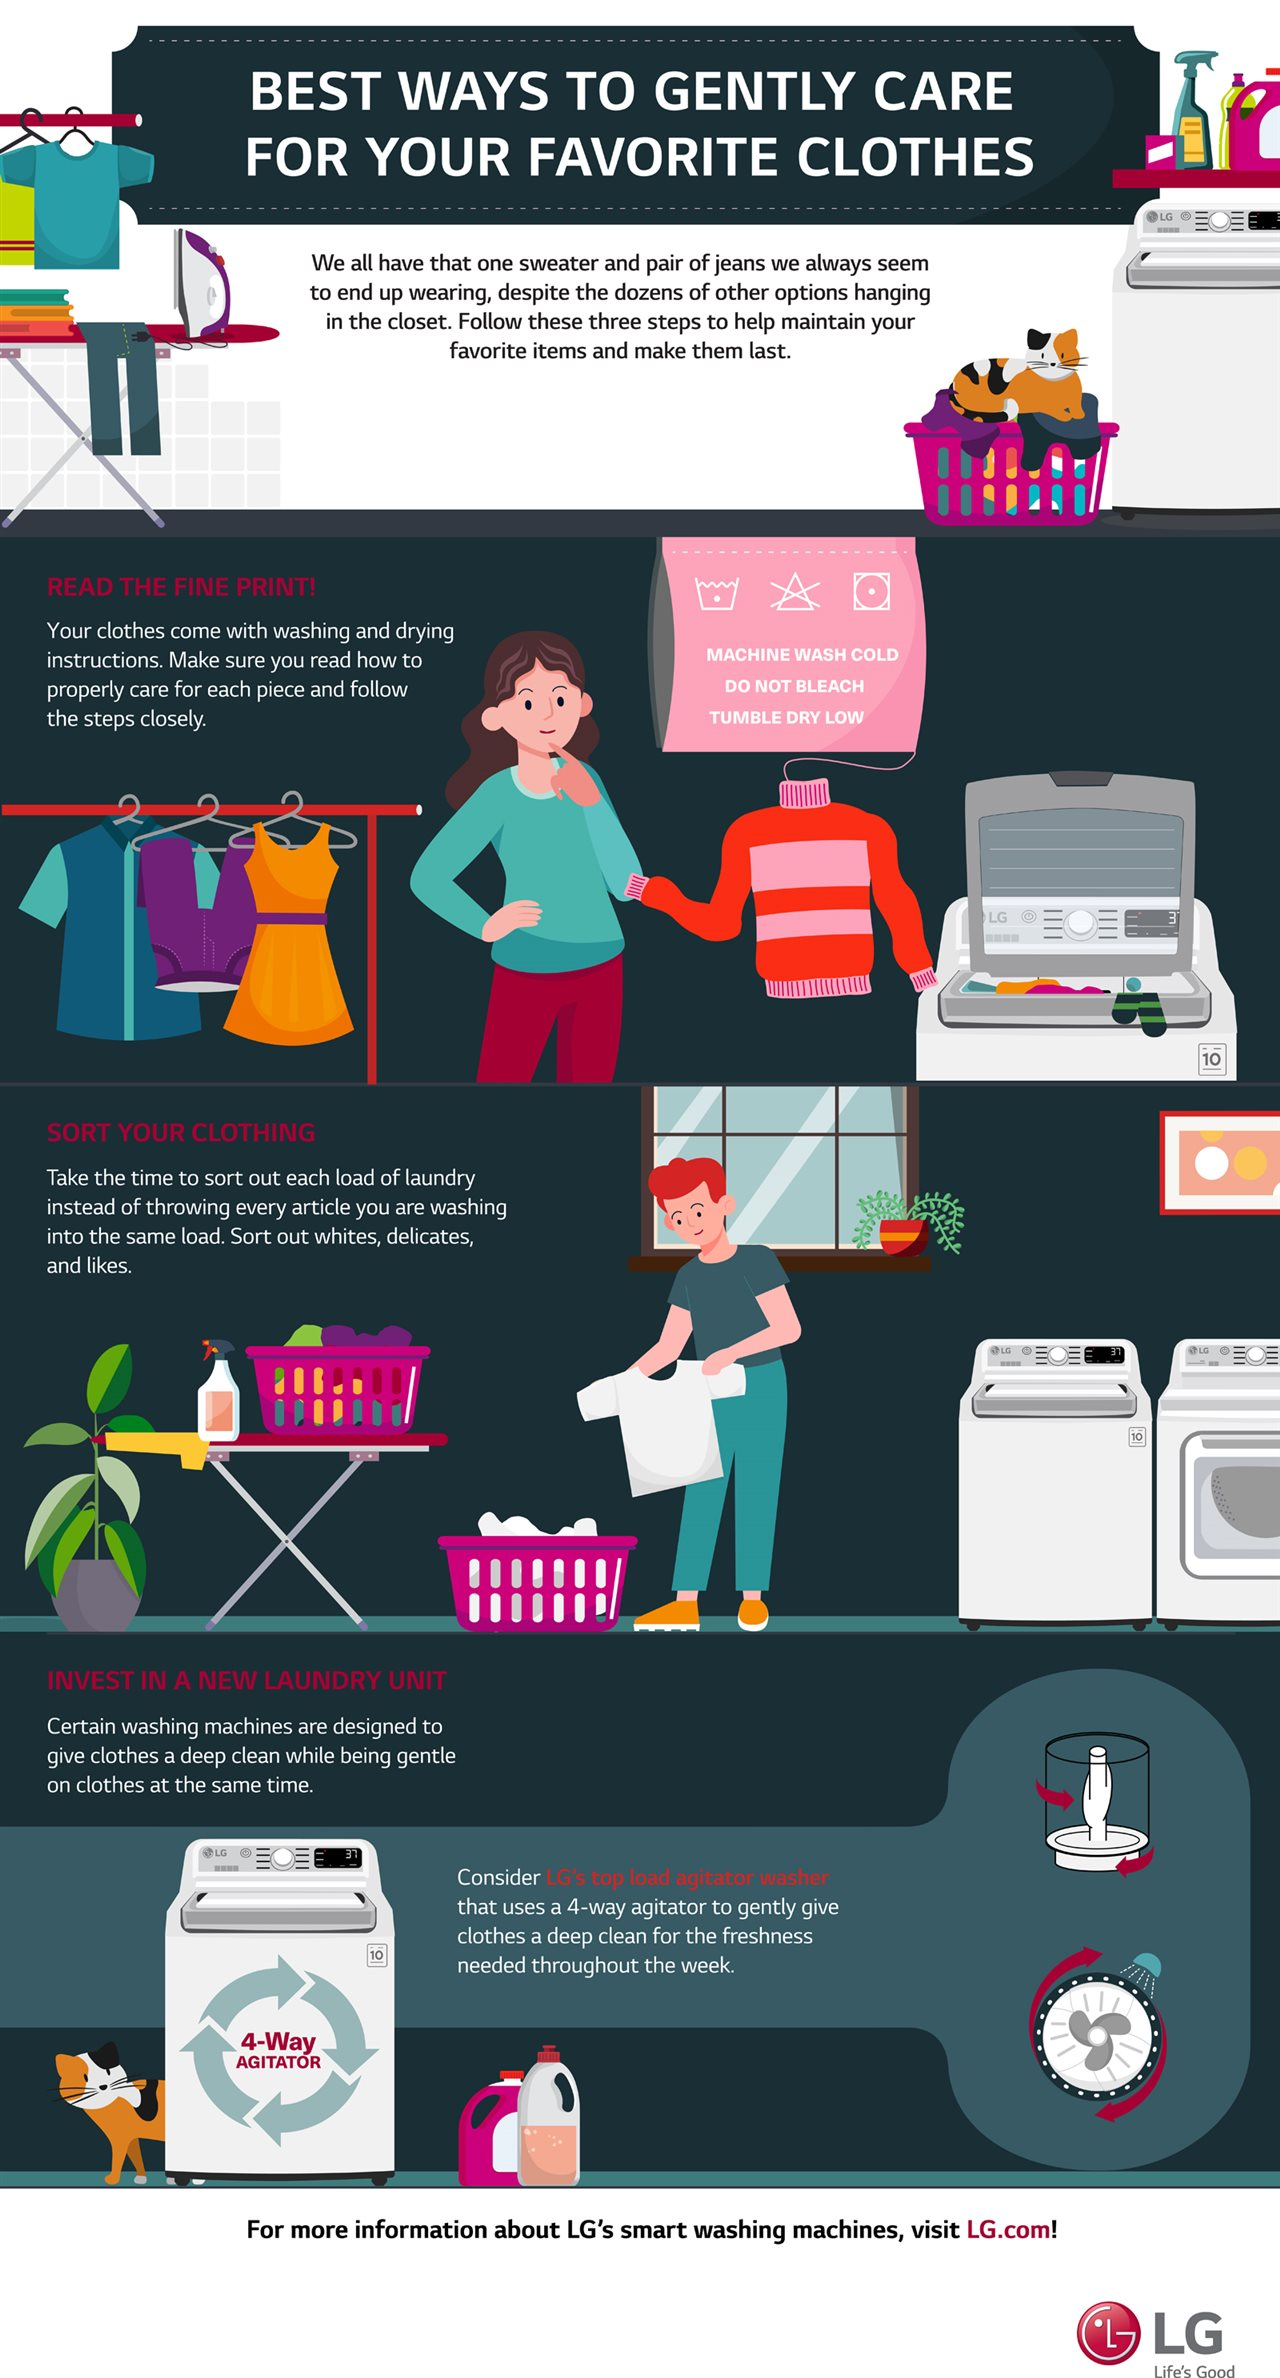 Best ways to gently care for your favorite clothes [Infographic]